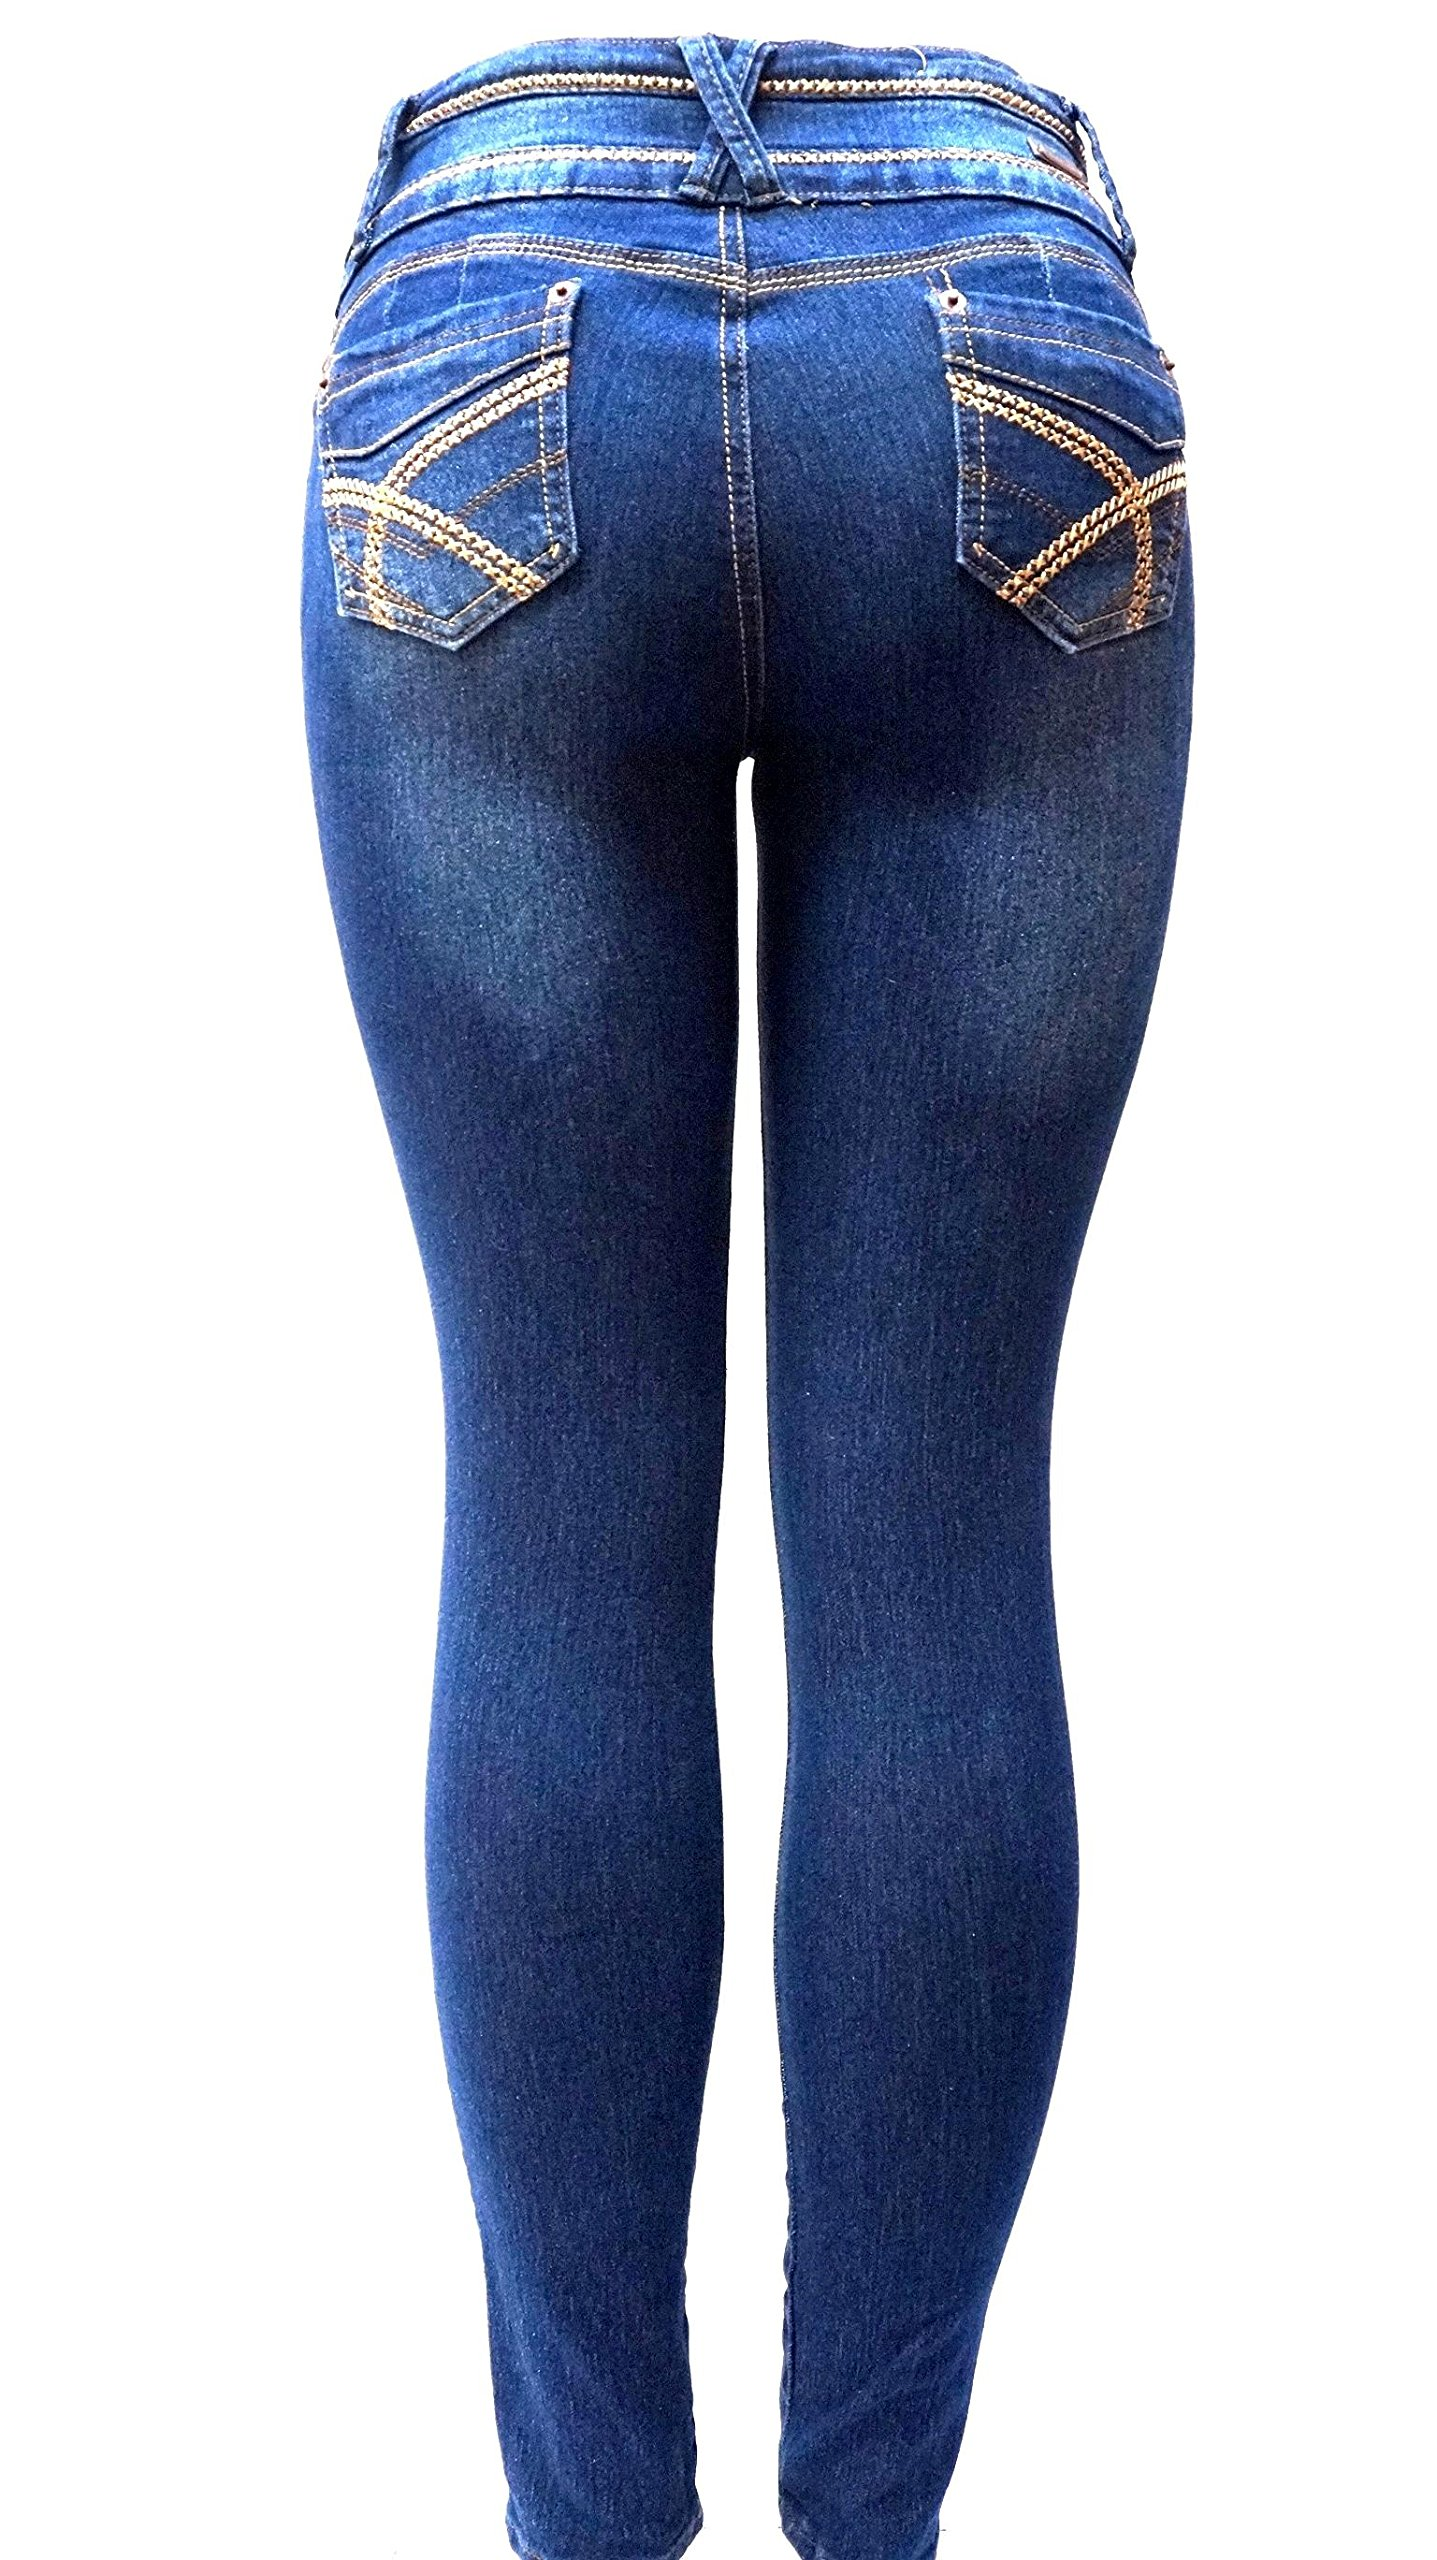 DM 1826 Juniors Womens Blue Denim Jeans Destroy Skinny Ripped Distressed Pants (1) by JEANS FOR LOVE (Image #4)